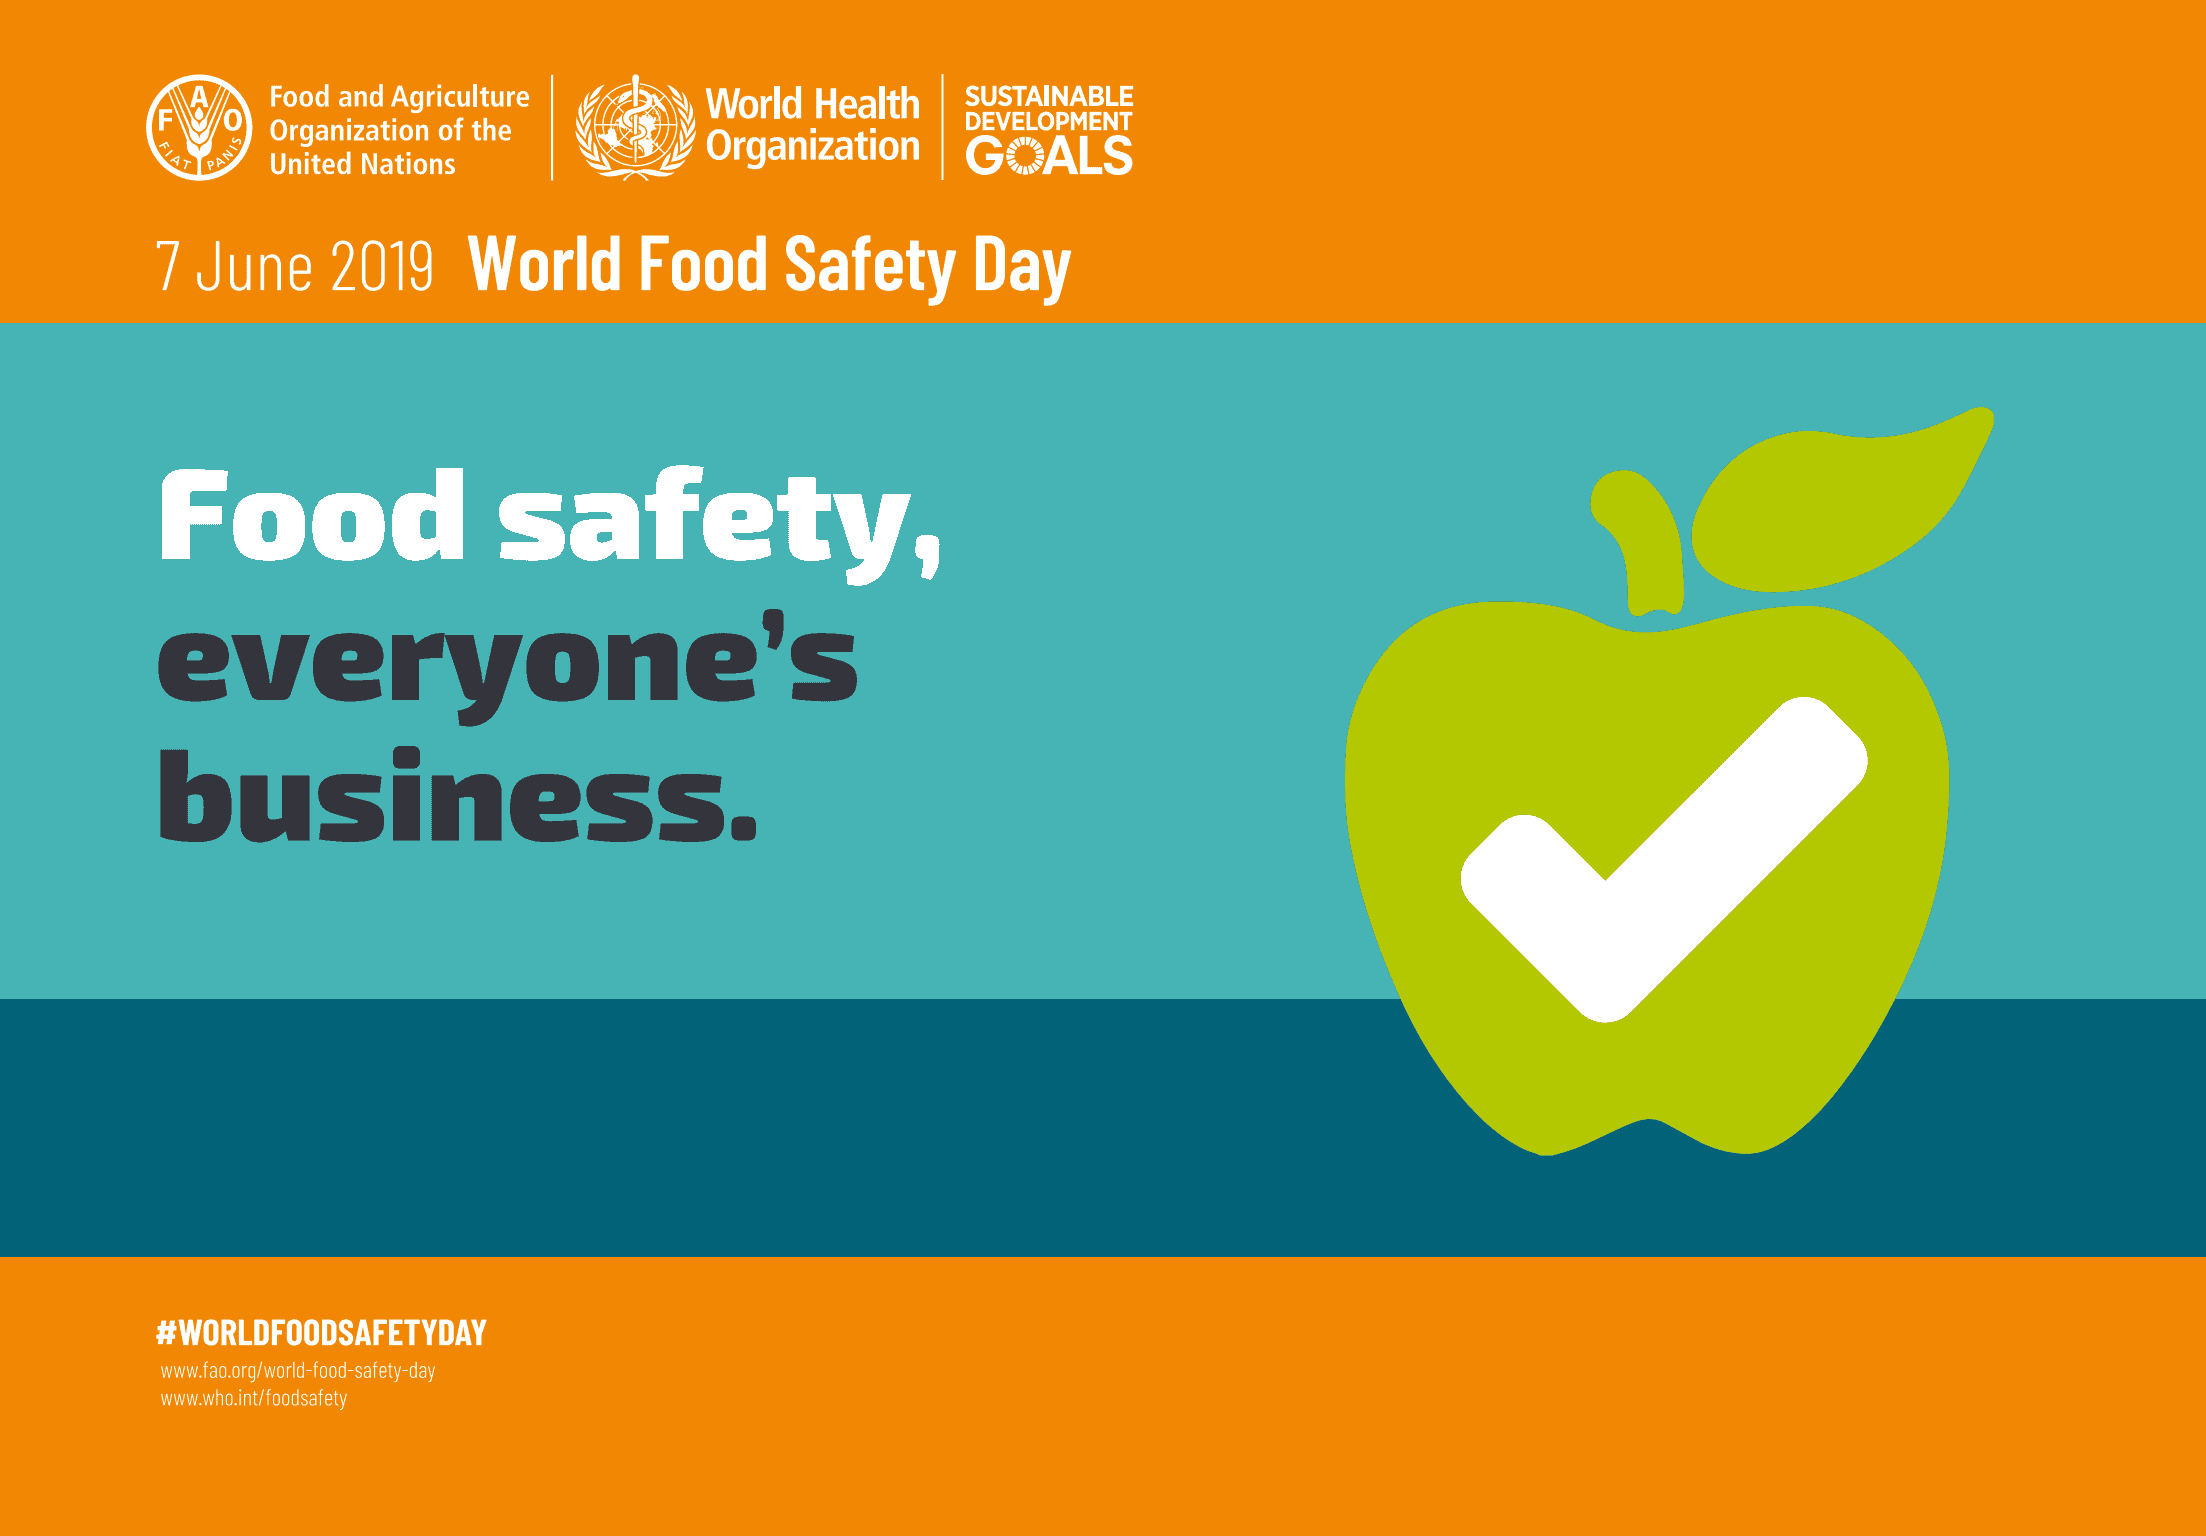 Food Safety is Everyone's Business | World Food Safety Day